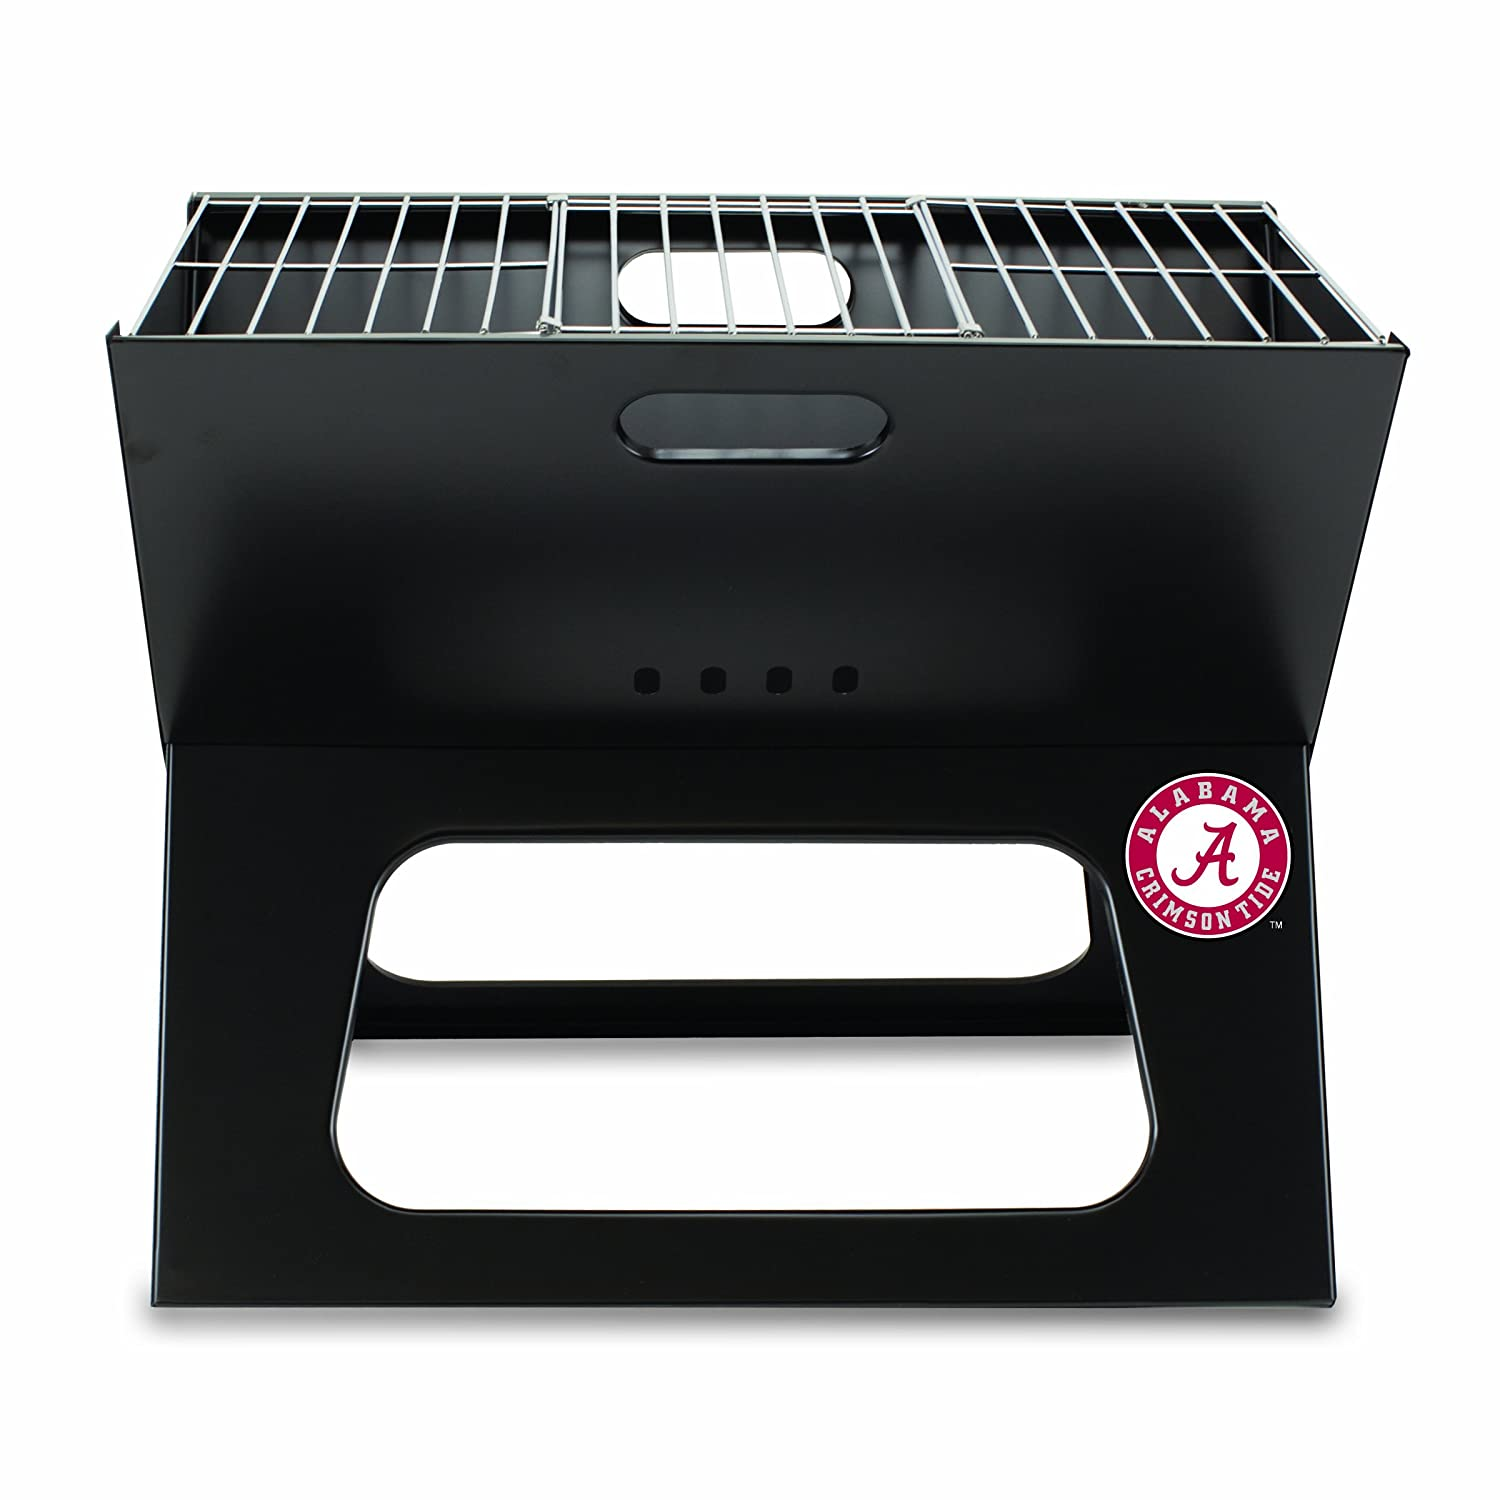 Picnic Time 大学生用ポータブルXグリル B004OHTGR8 GRILLING SURFACE OF 203.5 SQ. IN. (18.5 X 11